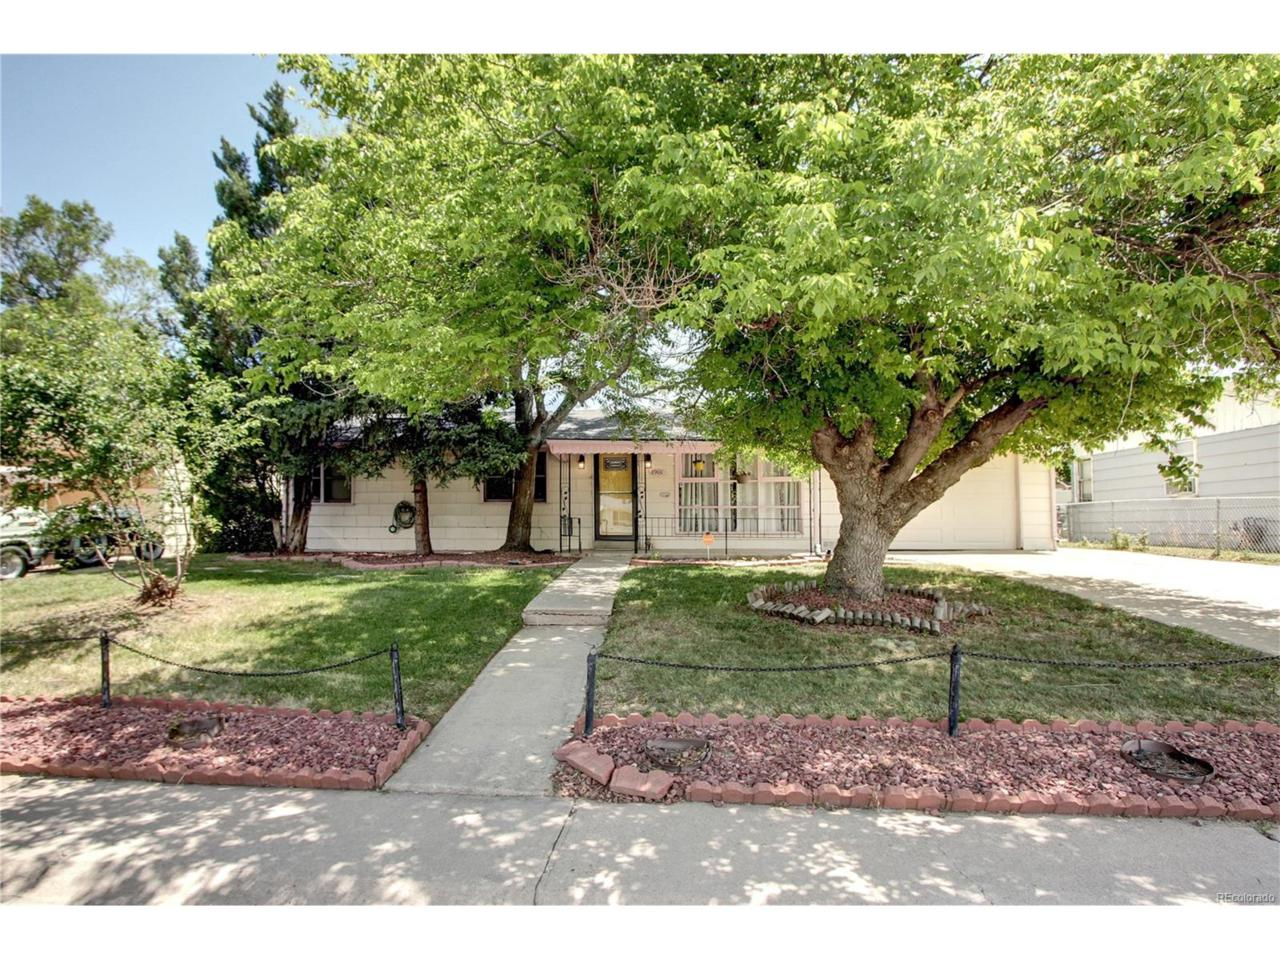 8900 Grove Street, Westminster, CO 80031 (MLS #2364411) :: 8z Real Estate